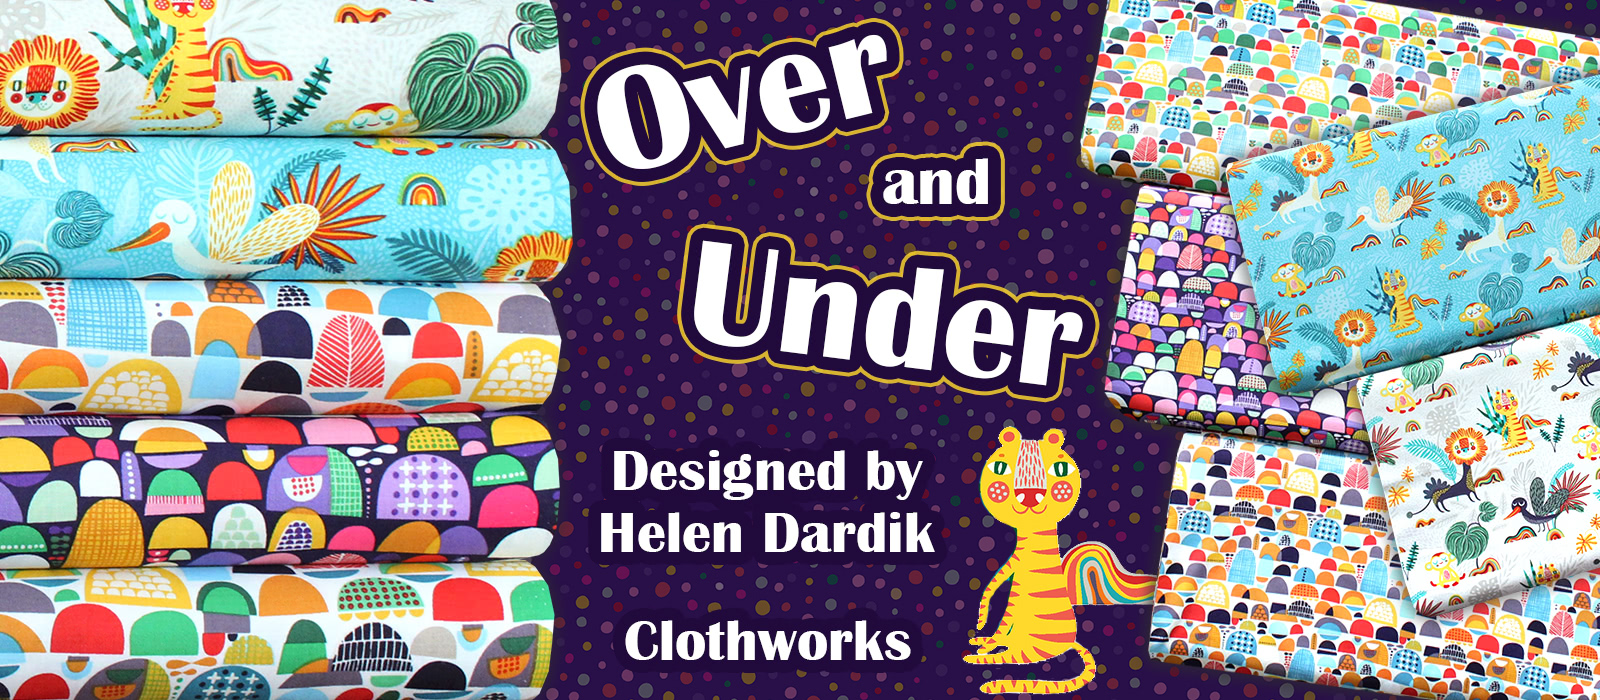 Clothworks Over and Under Collection by Helen Dardik